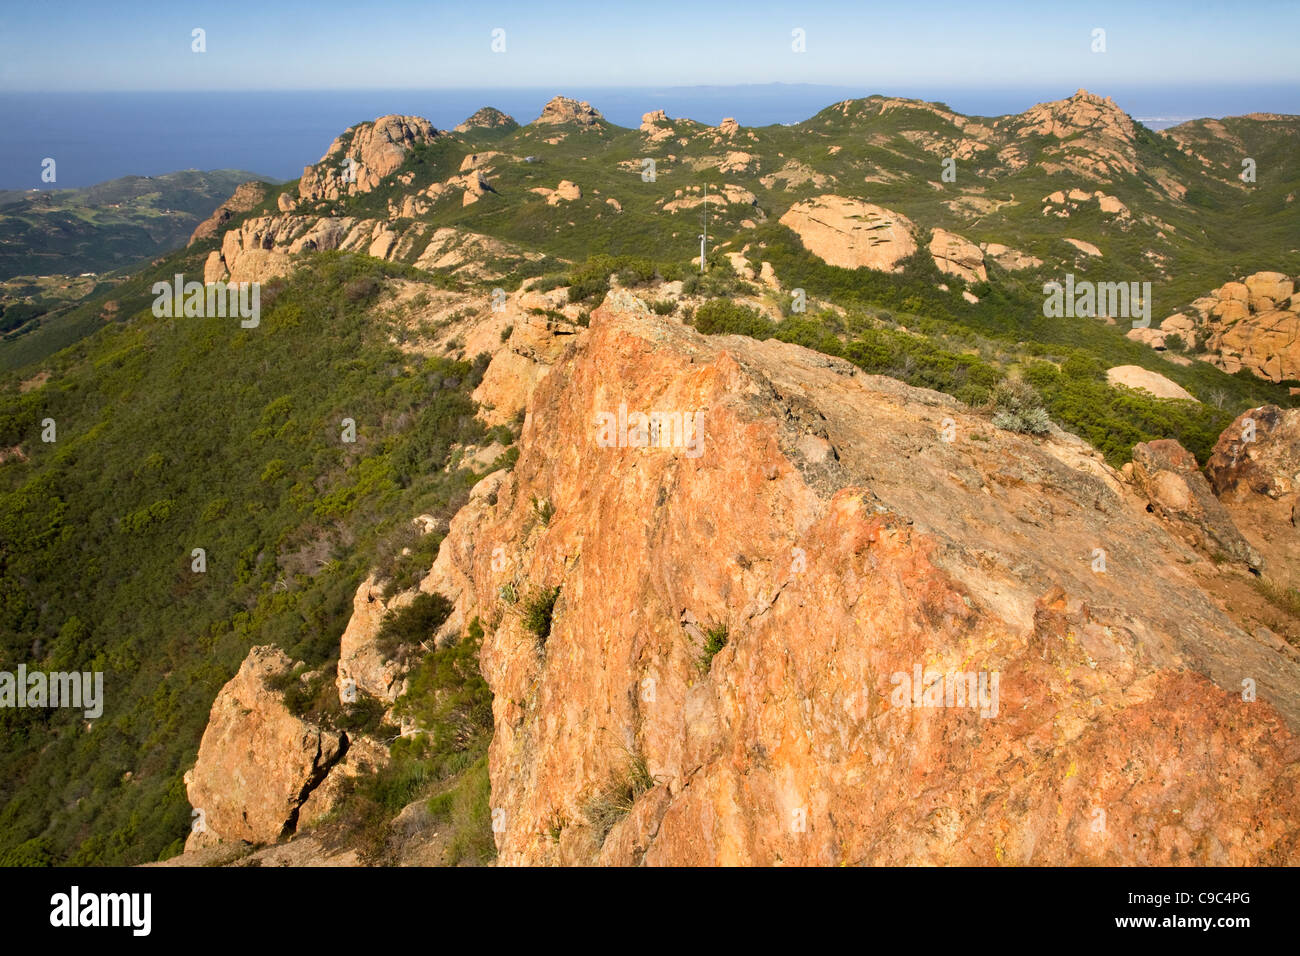 Exposed sandstone at the summit of Sandstone Mountain located along the Backbone Trail in the Santa Monica Mountains. - Stock Image